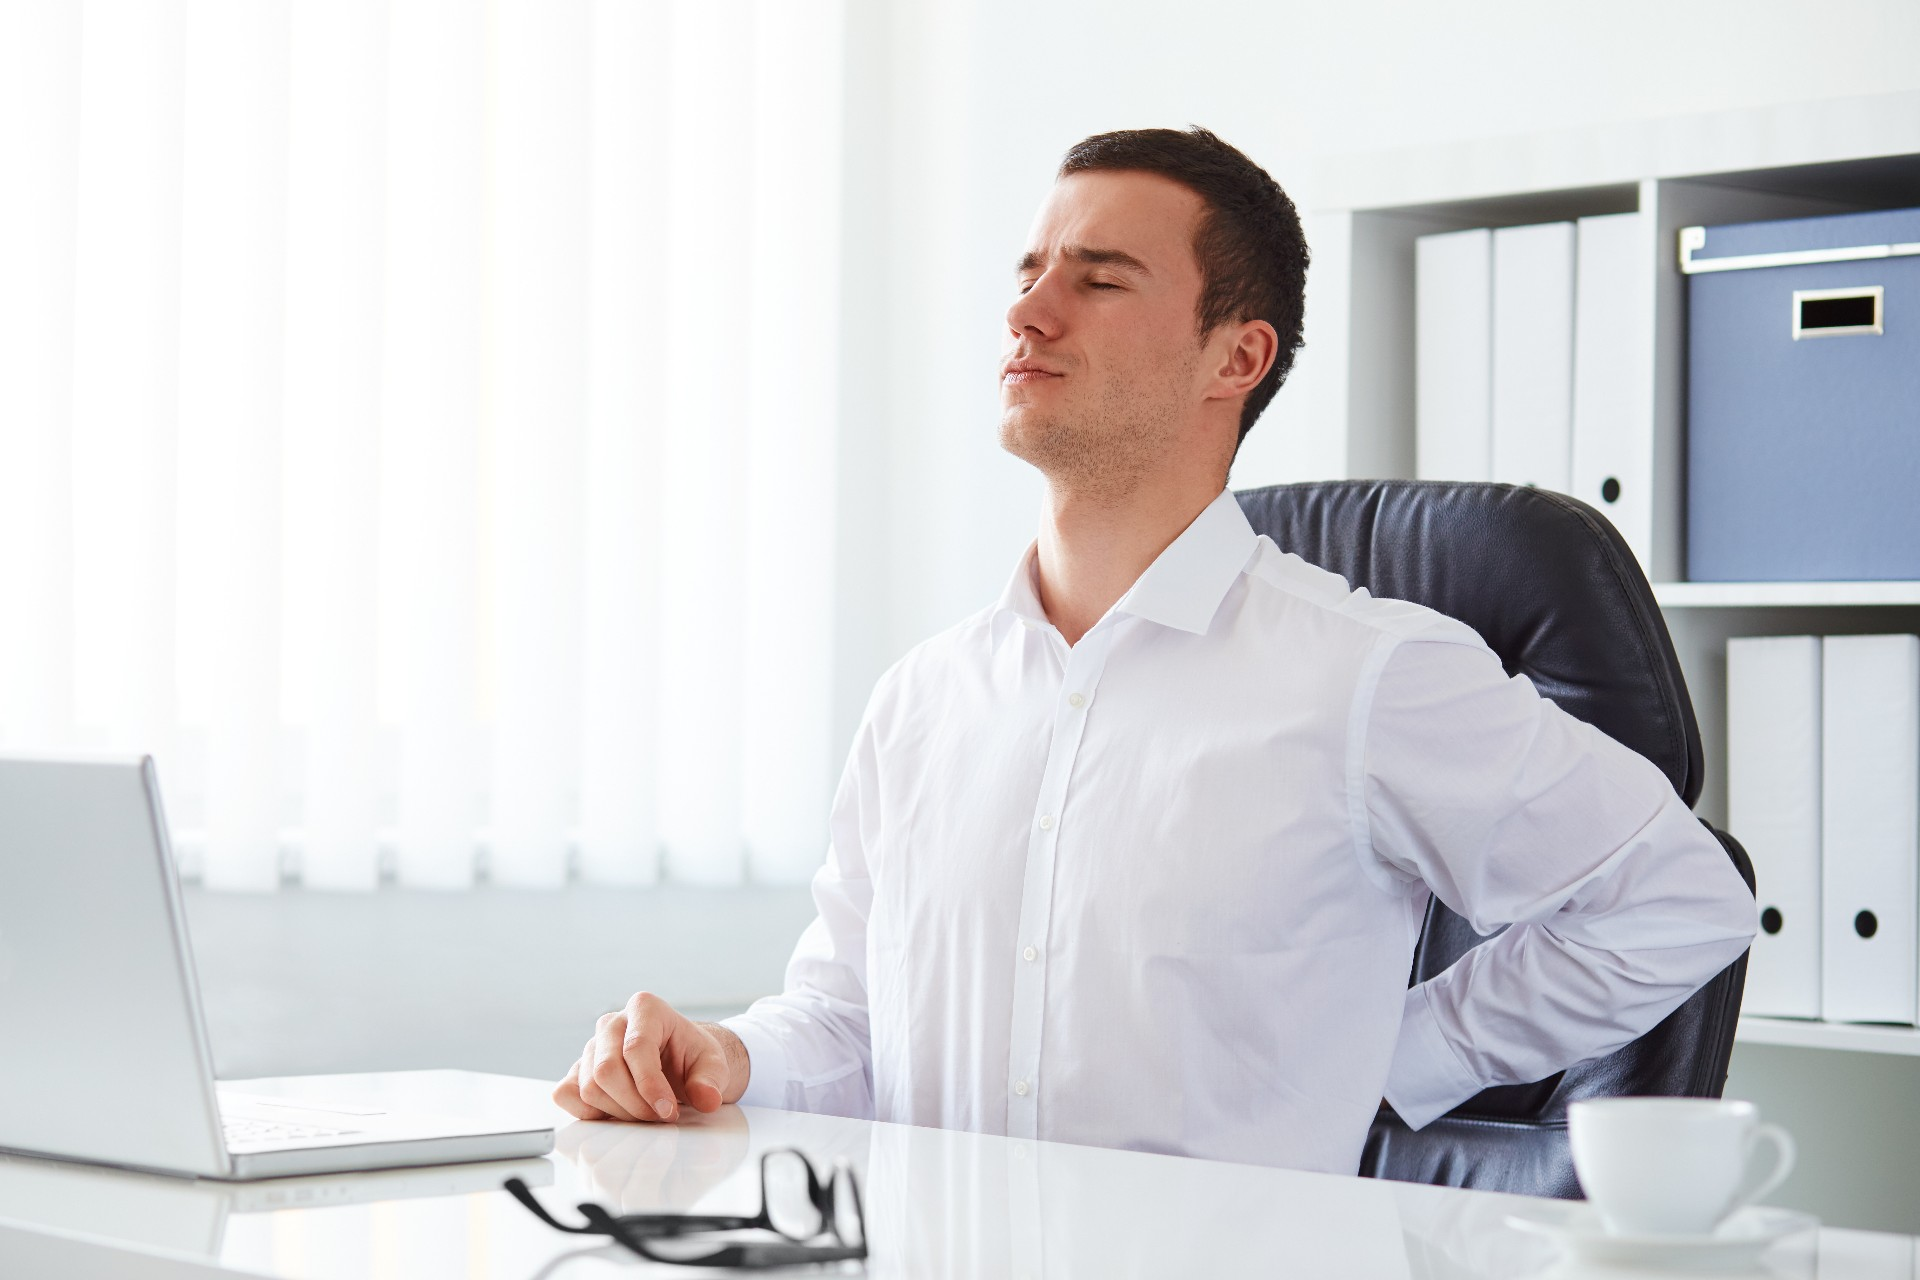 What You Need to Know About Bad Posture and Great Tips to Improve It